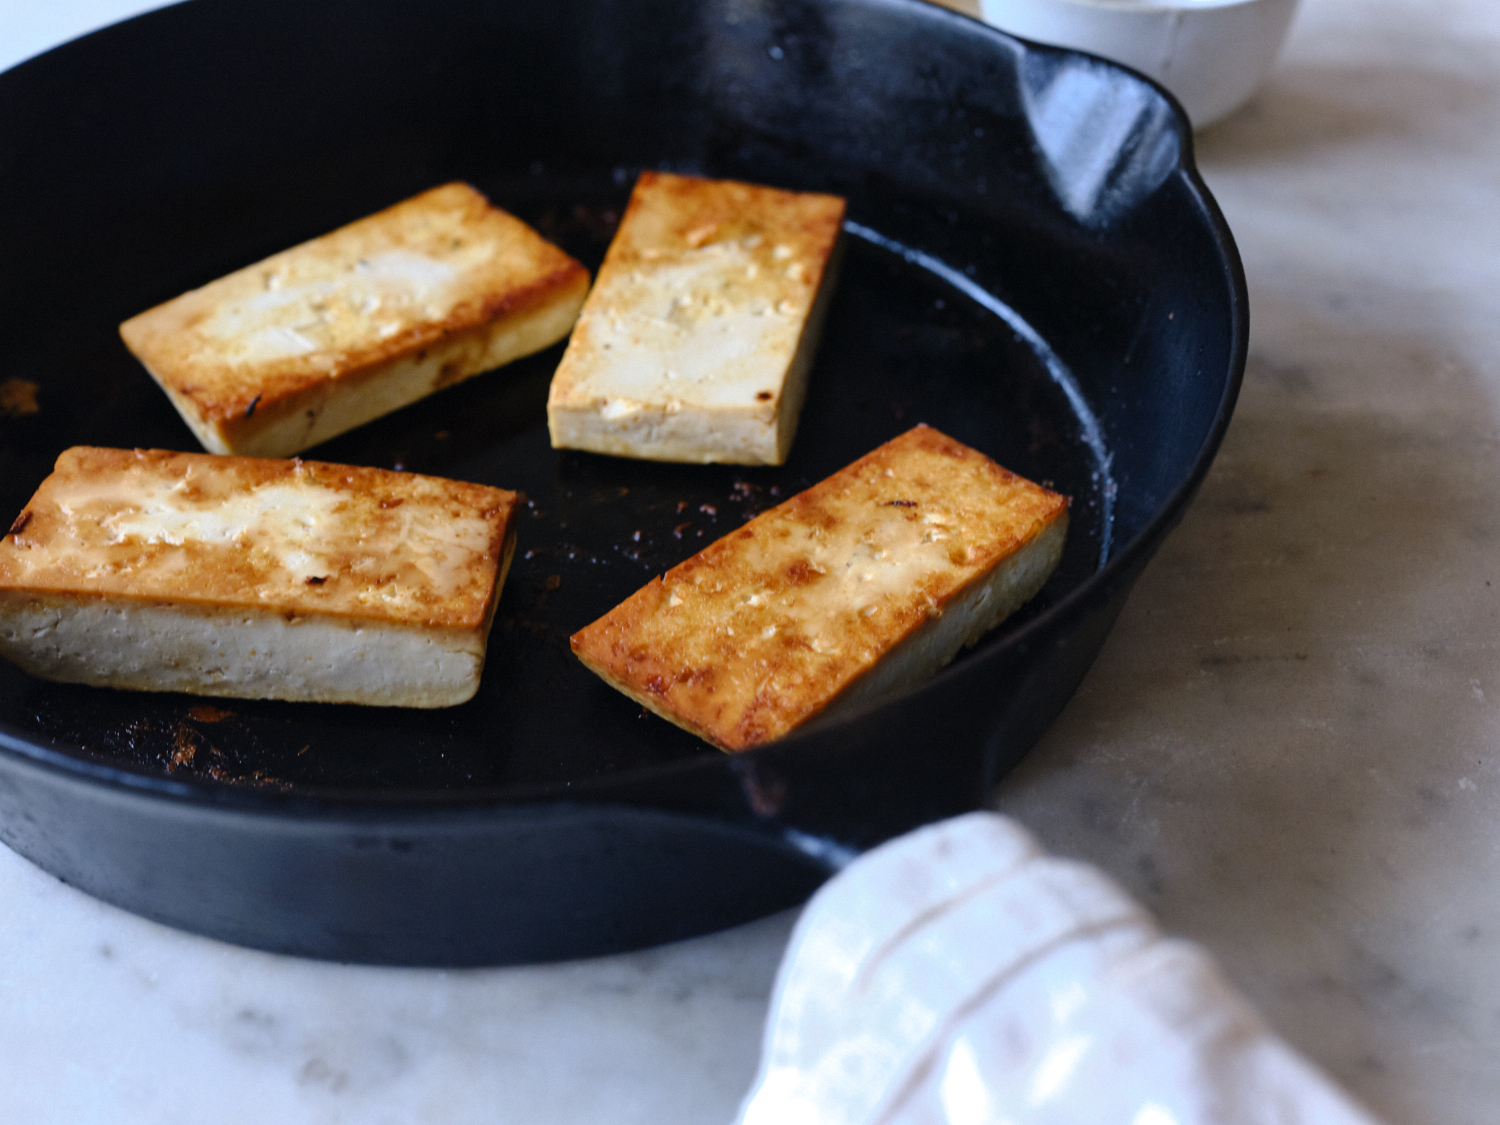 Tofu in Skillet for Vegan Sushi